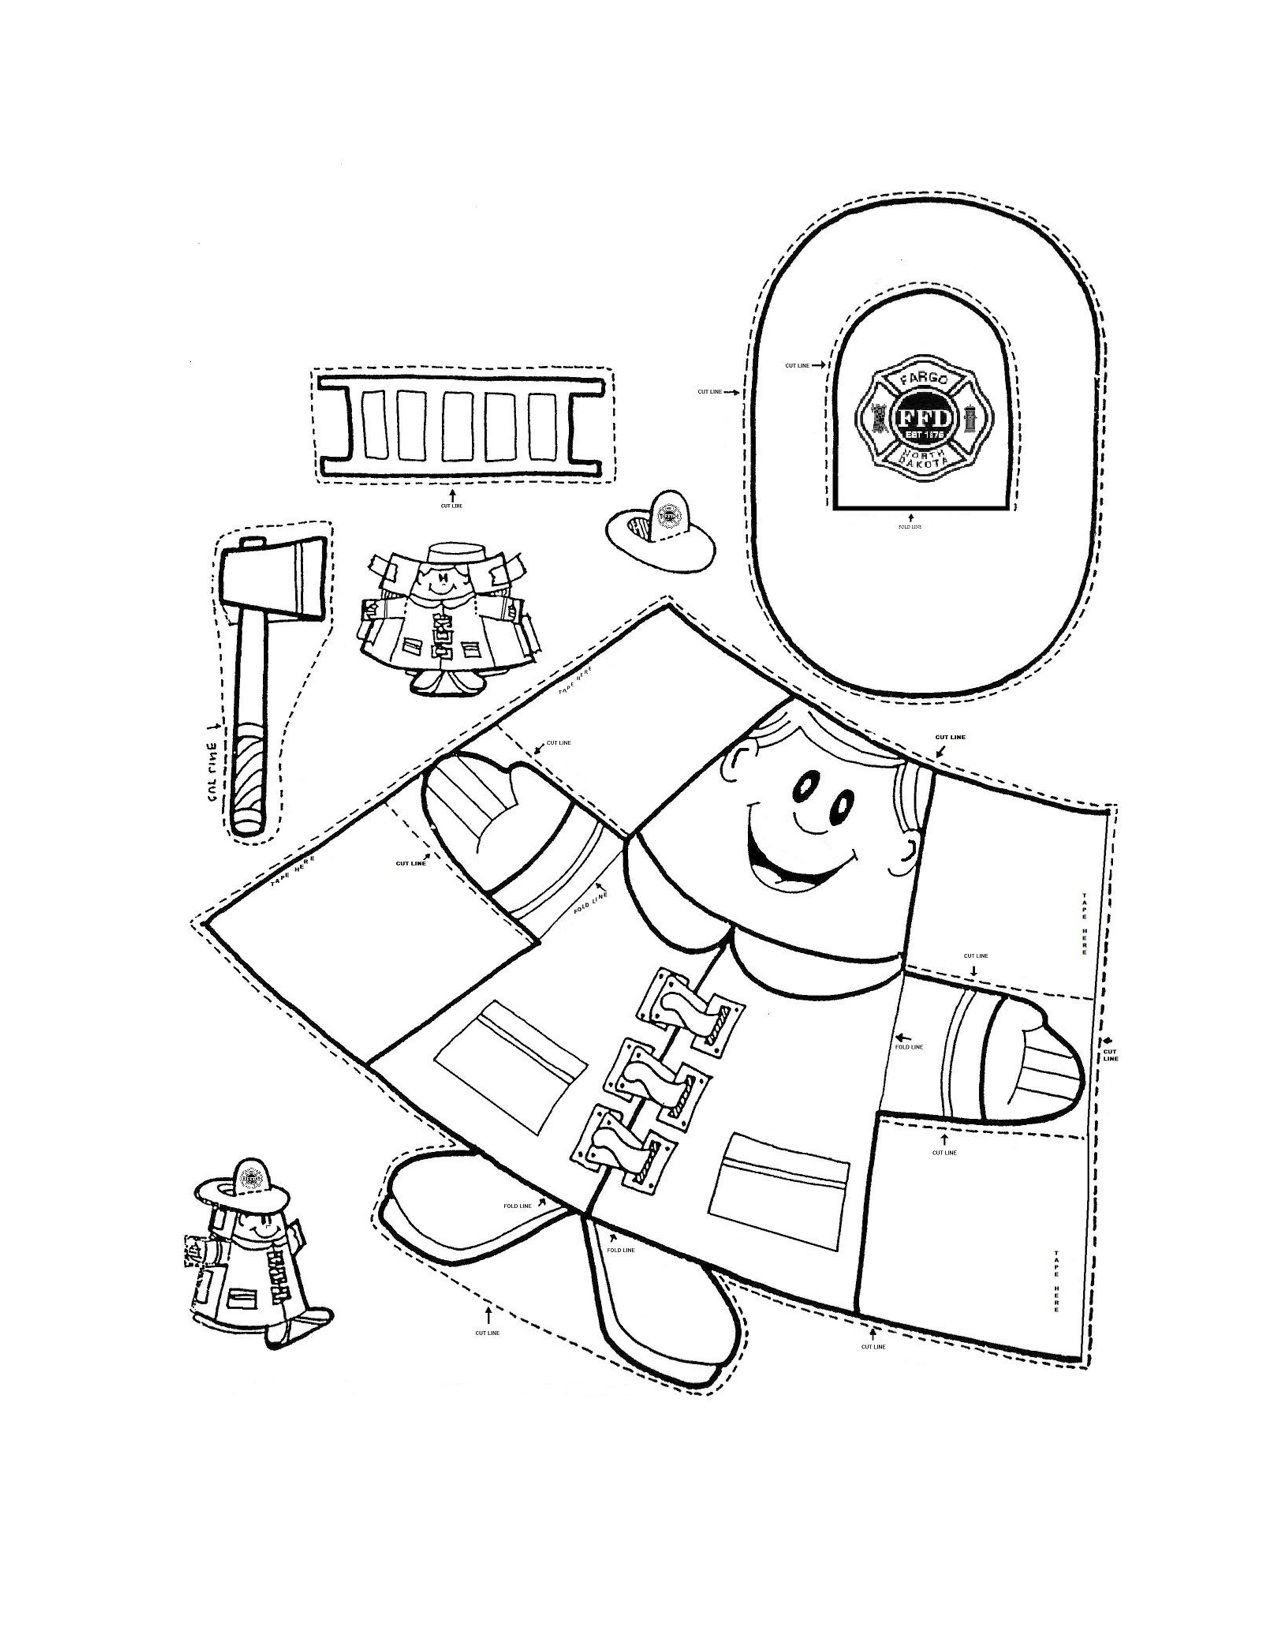 Free Printable Fire Safety Worksheets Fire Safety Fireman Crafts Munity Helper Firefighter